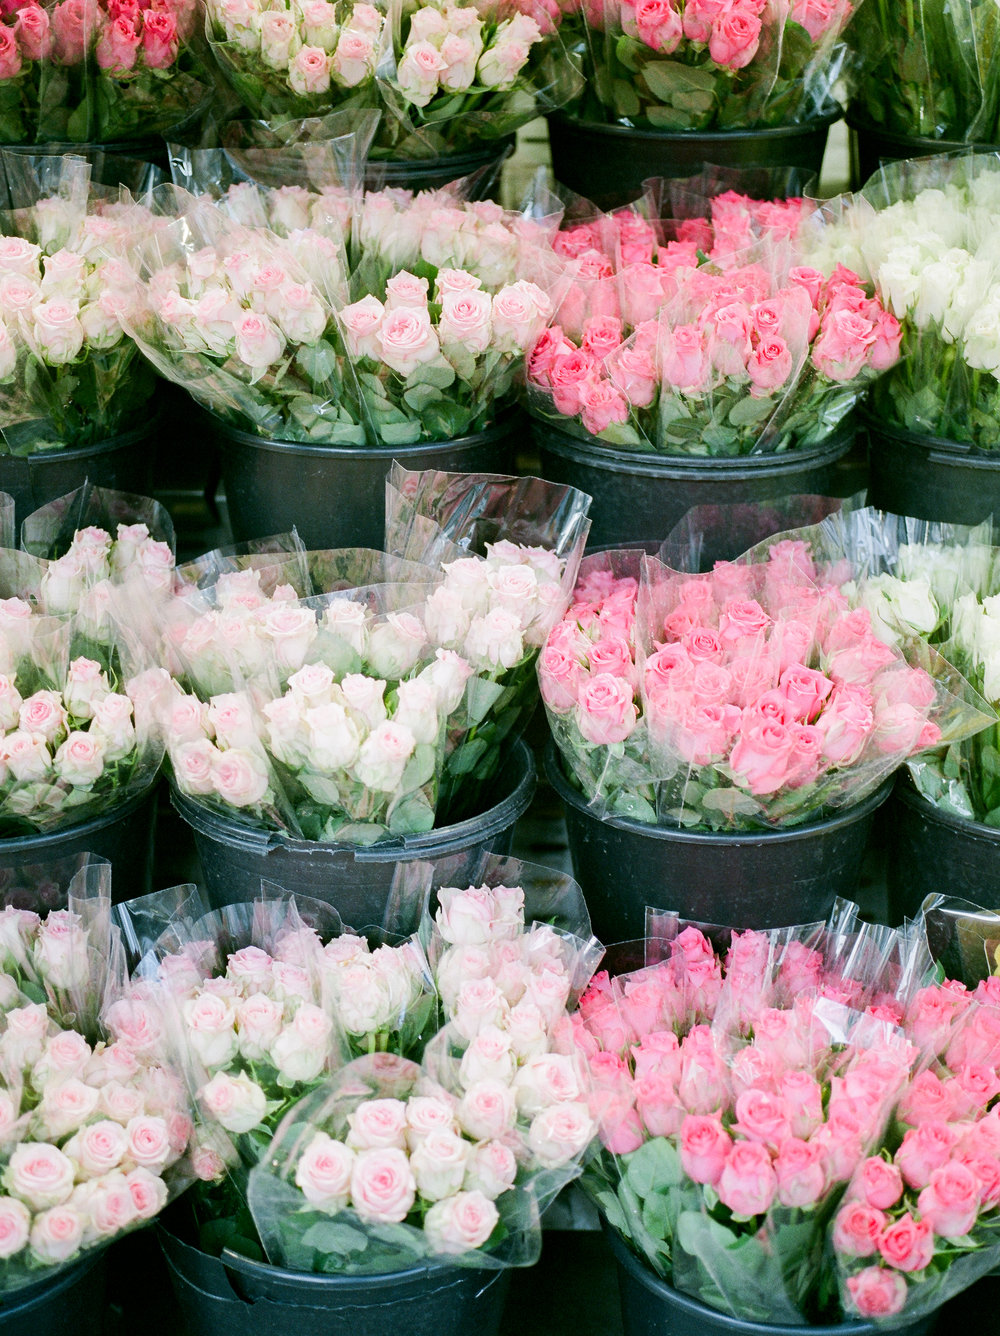 fresh-roses-in-paris-market.jpg